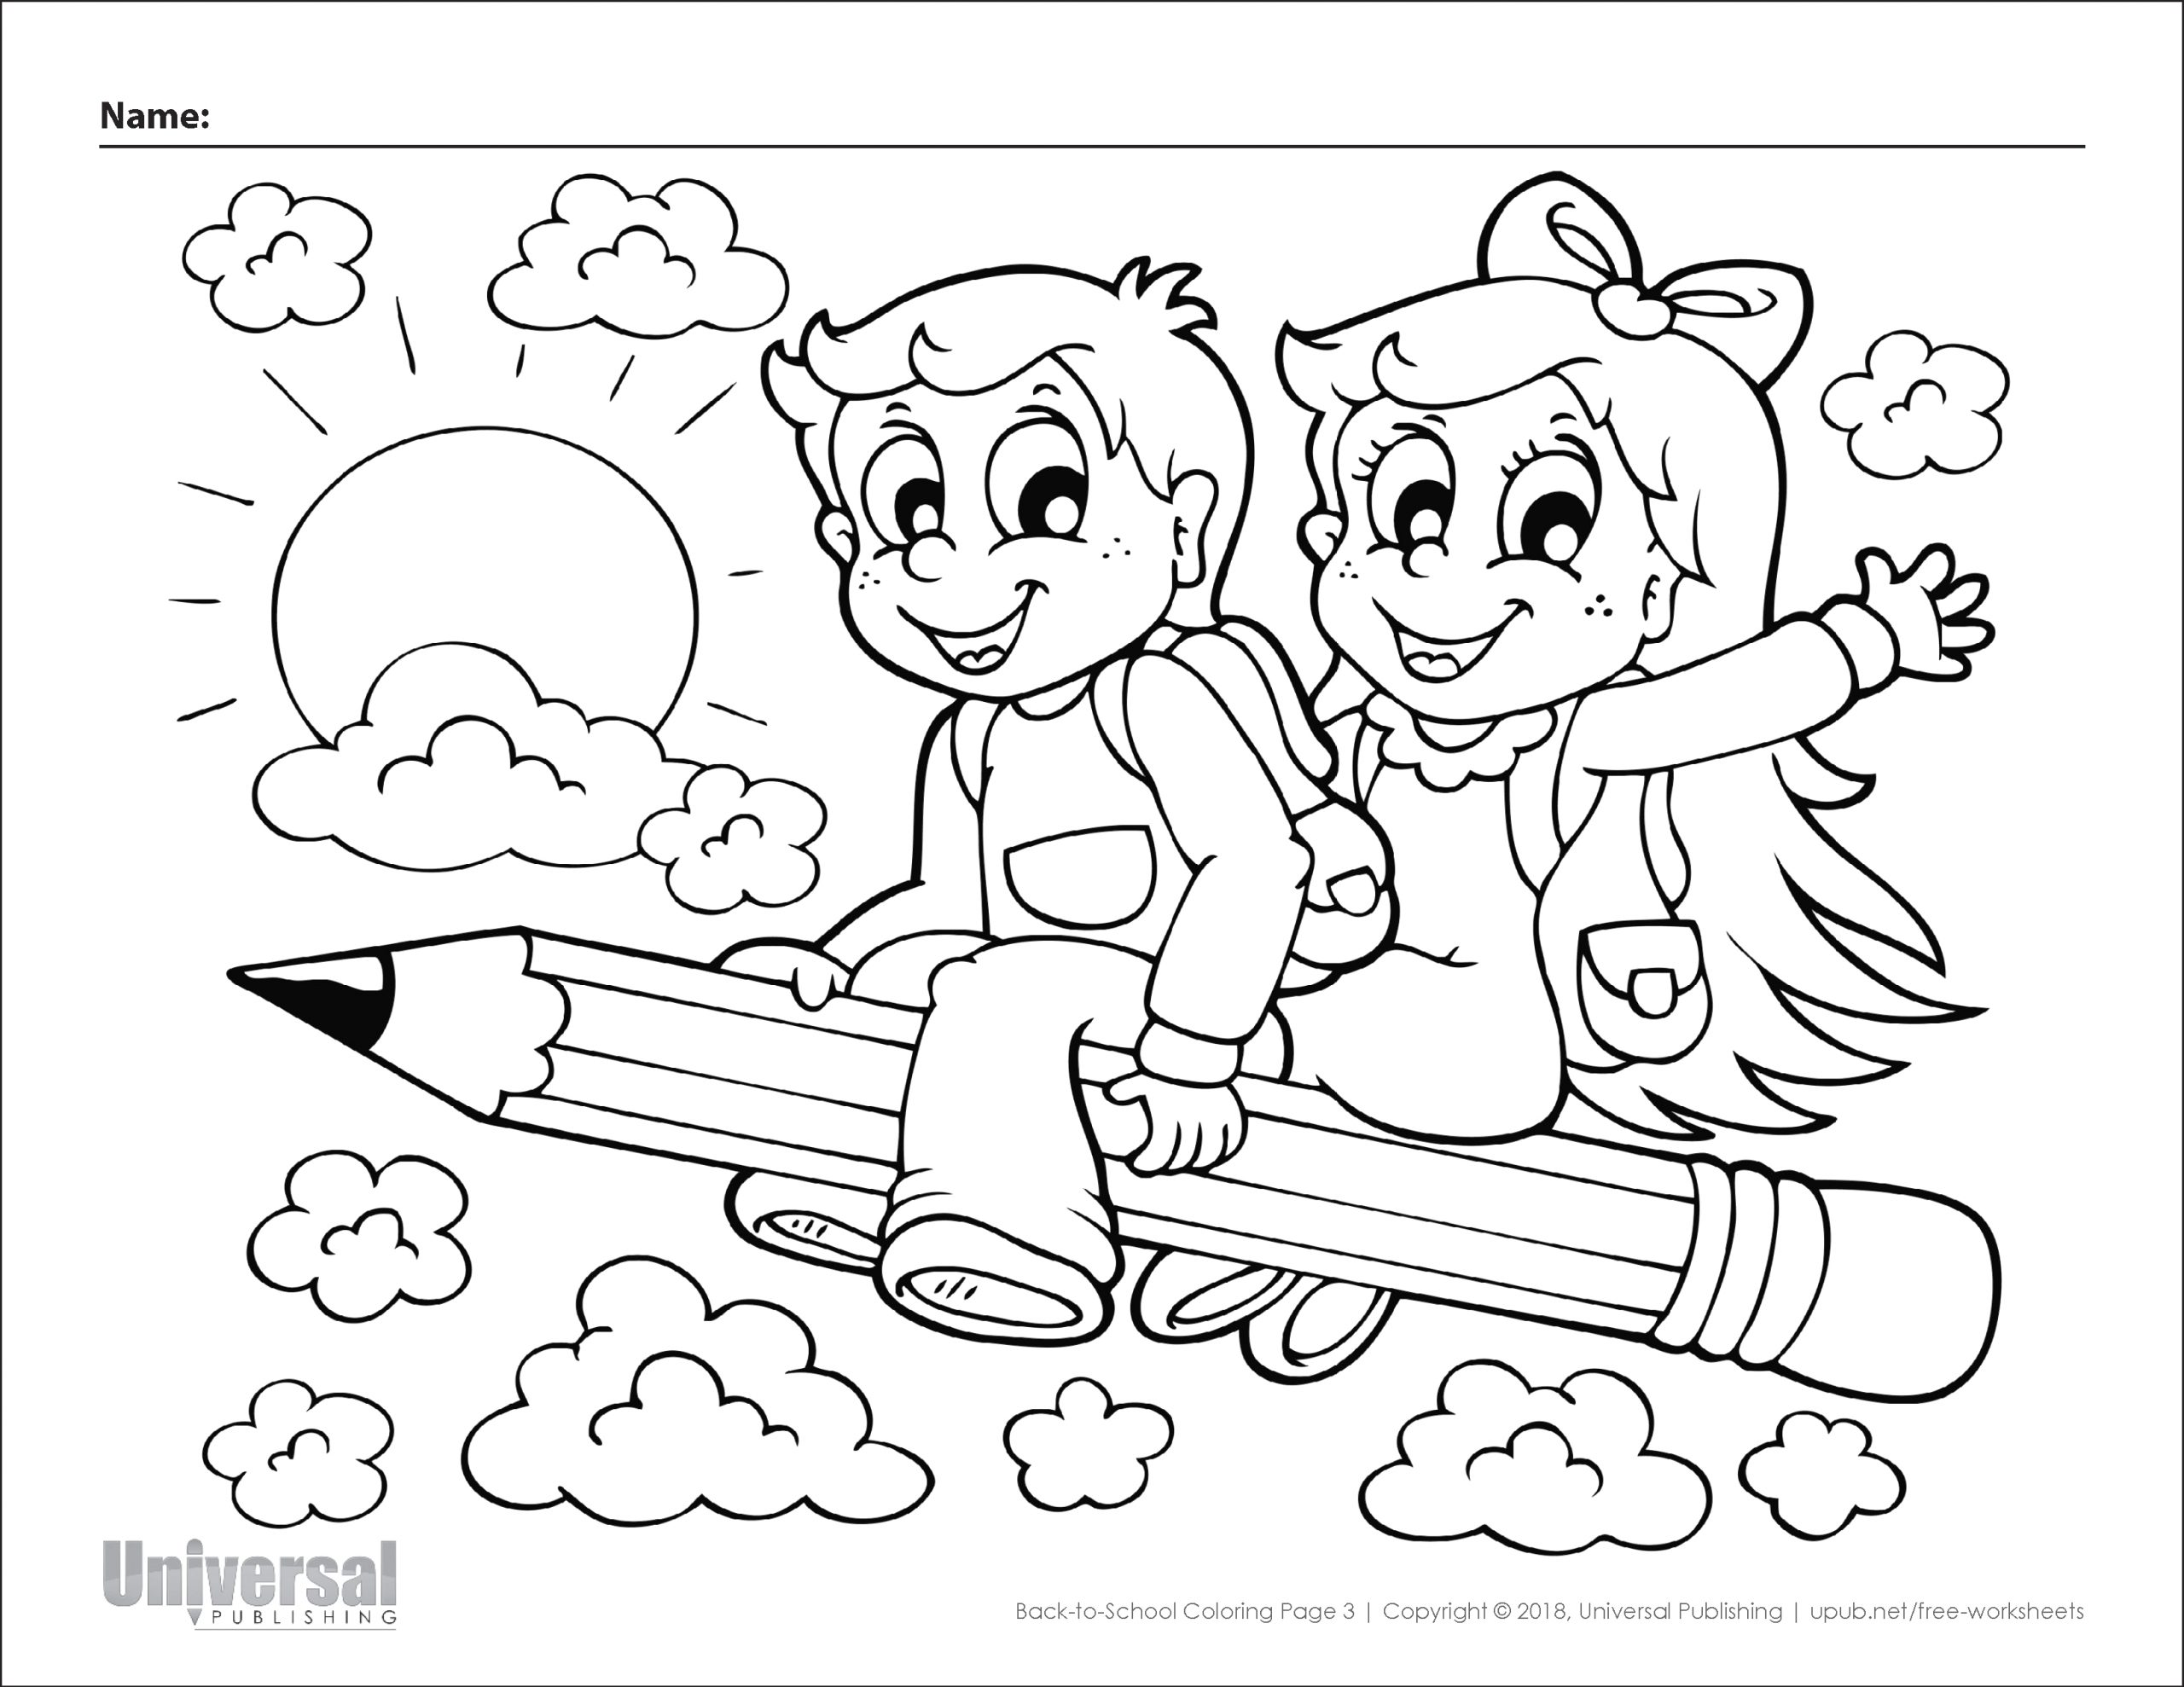 Free Printable Coloring Pages Back to School Back to School Coloring Pages